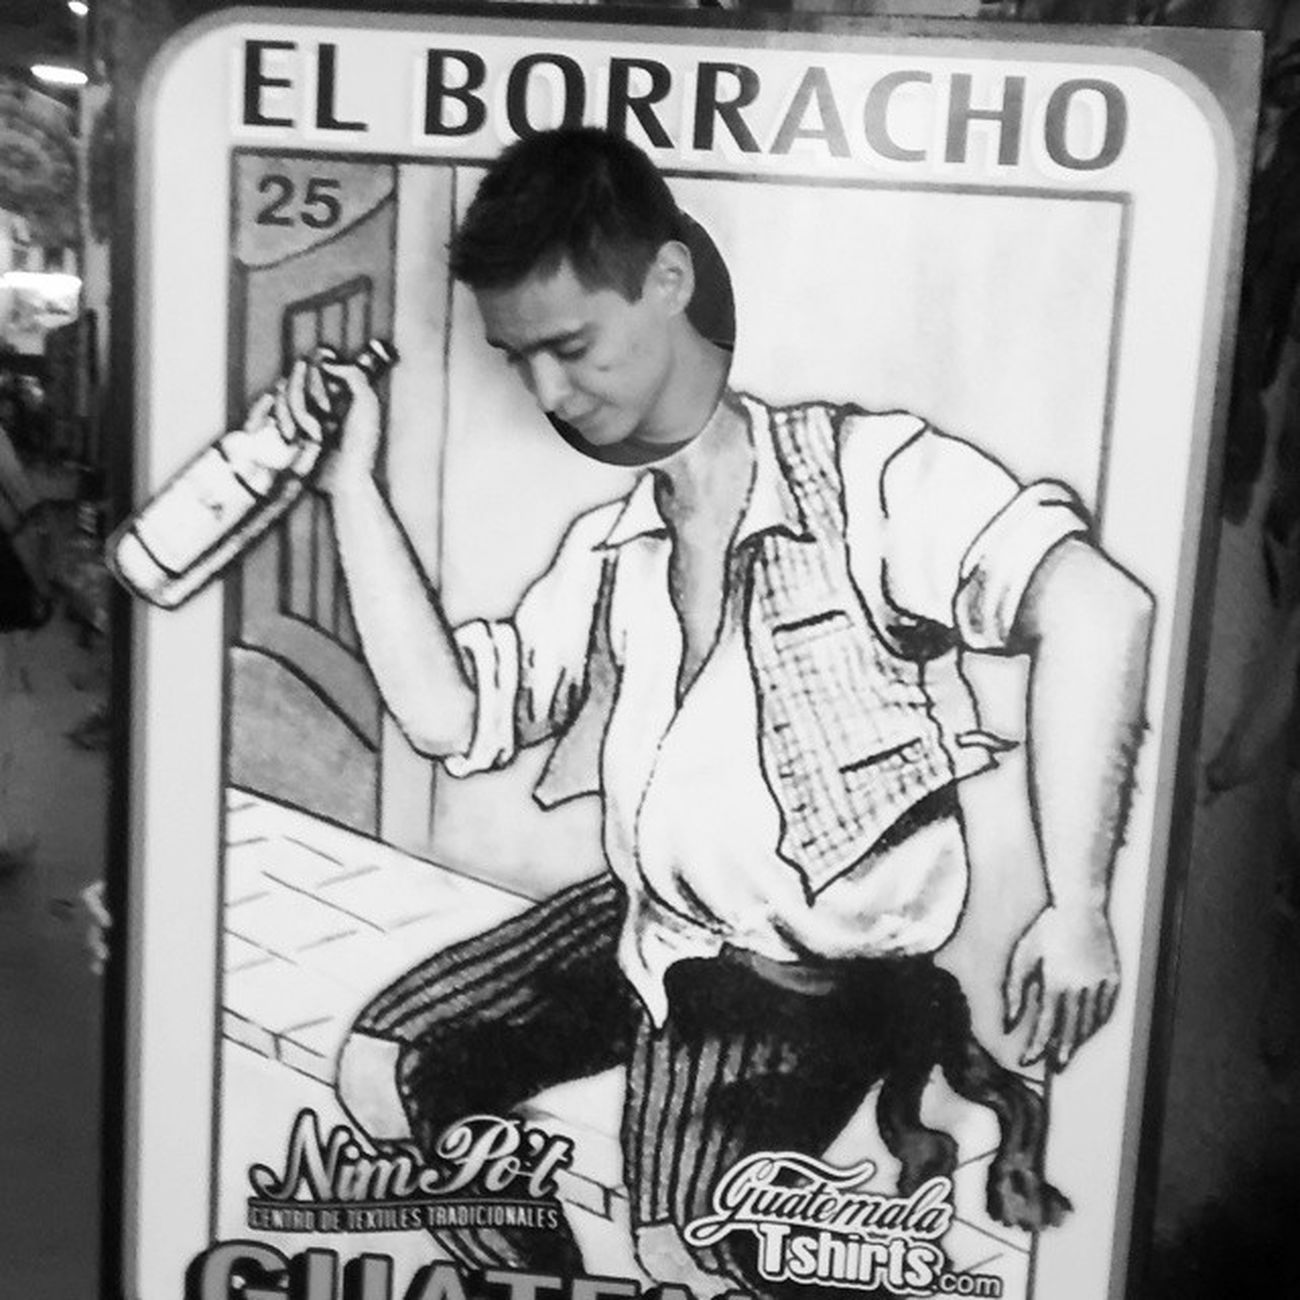 Elborracho